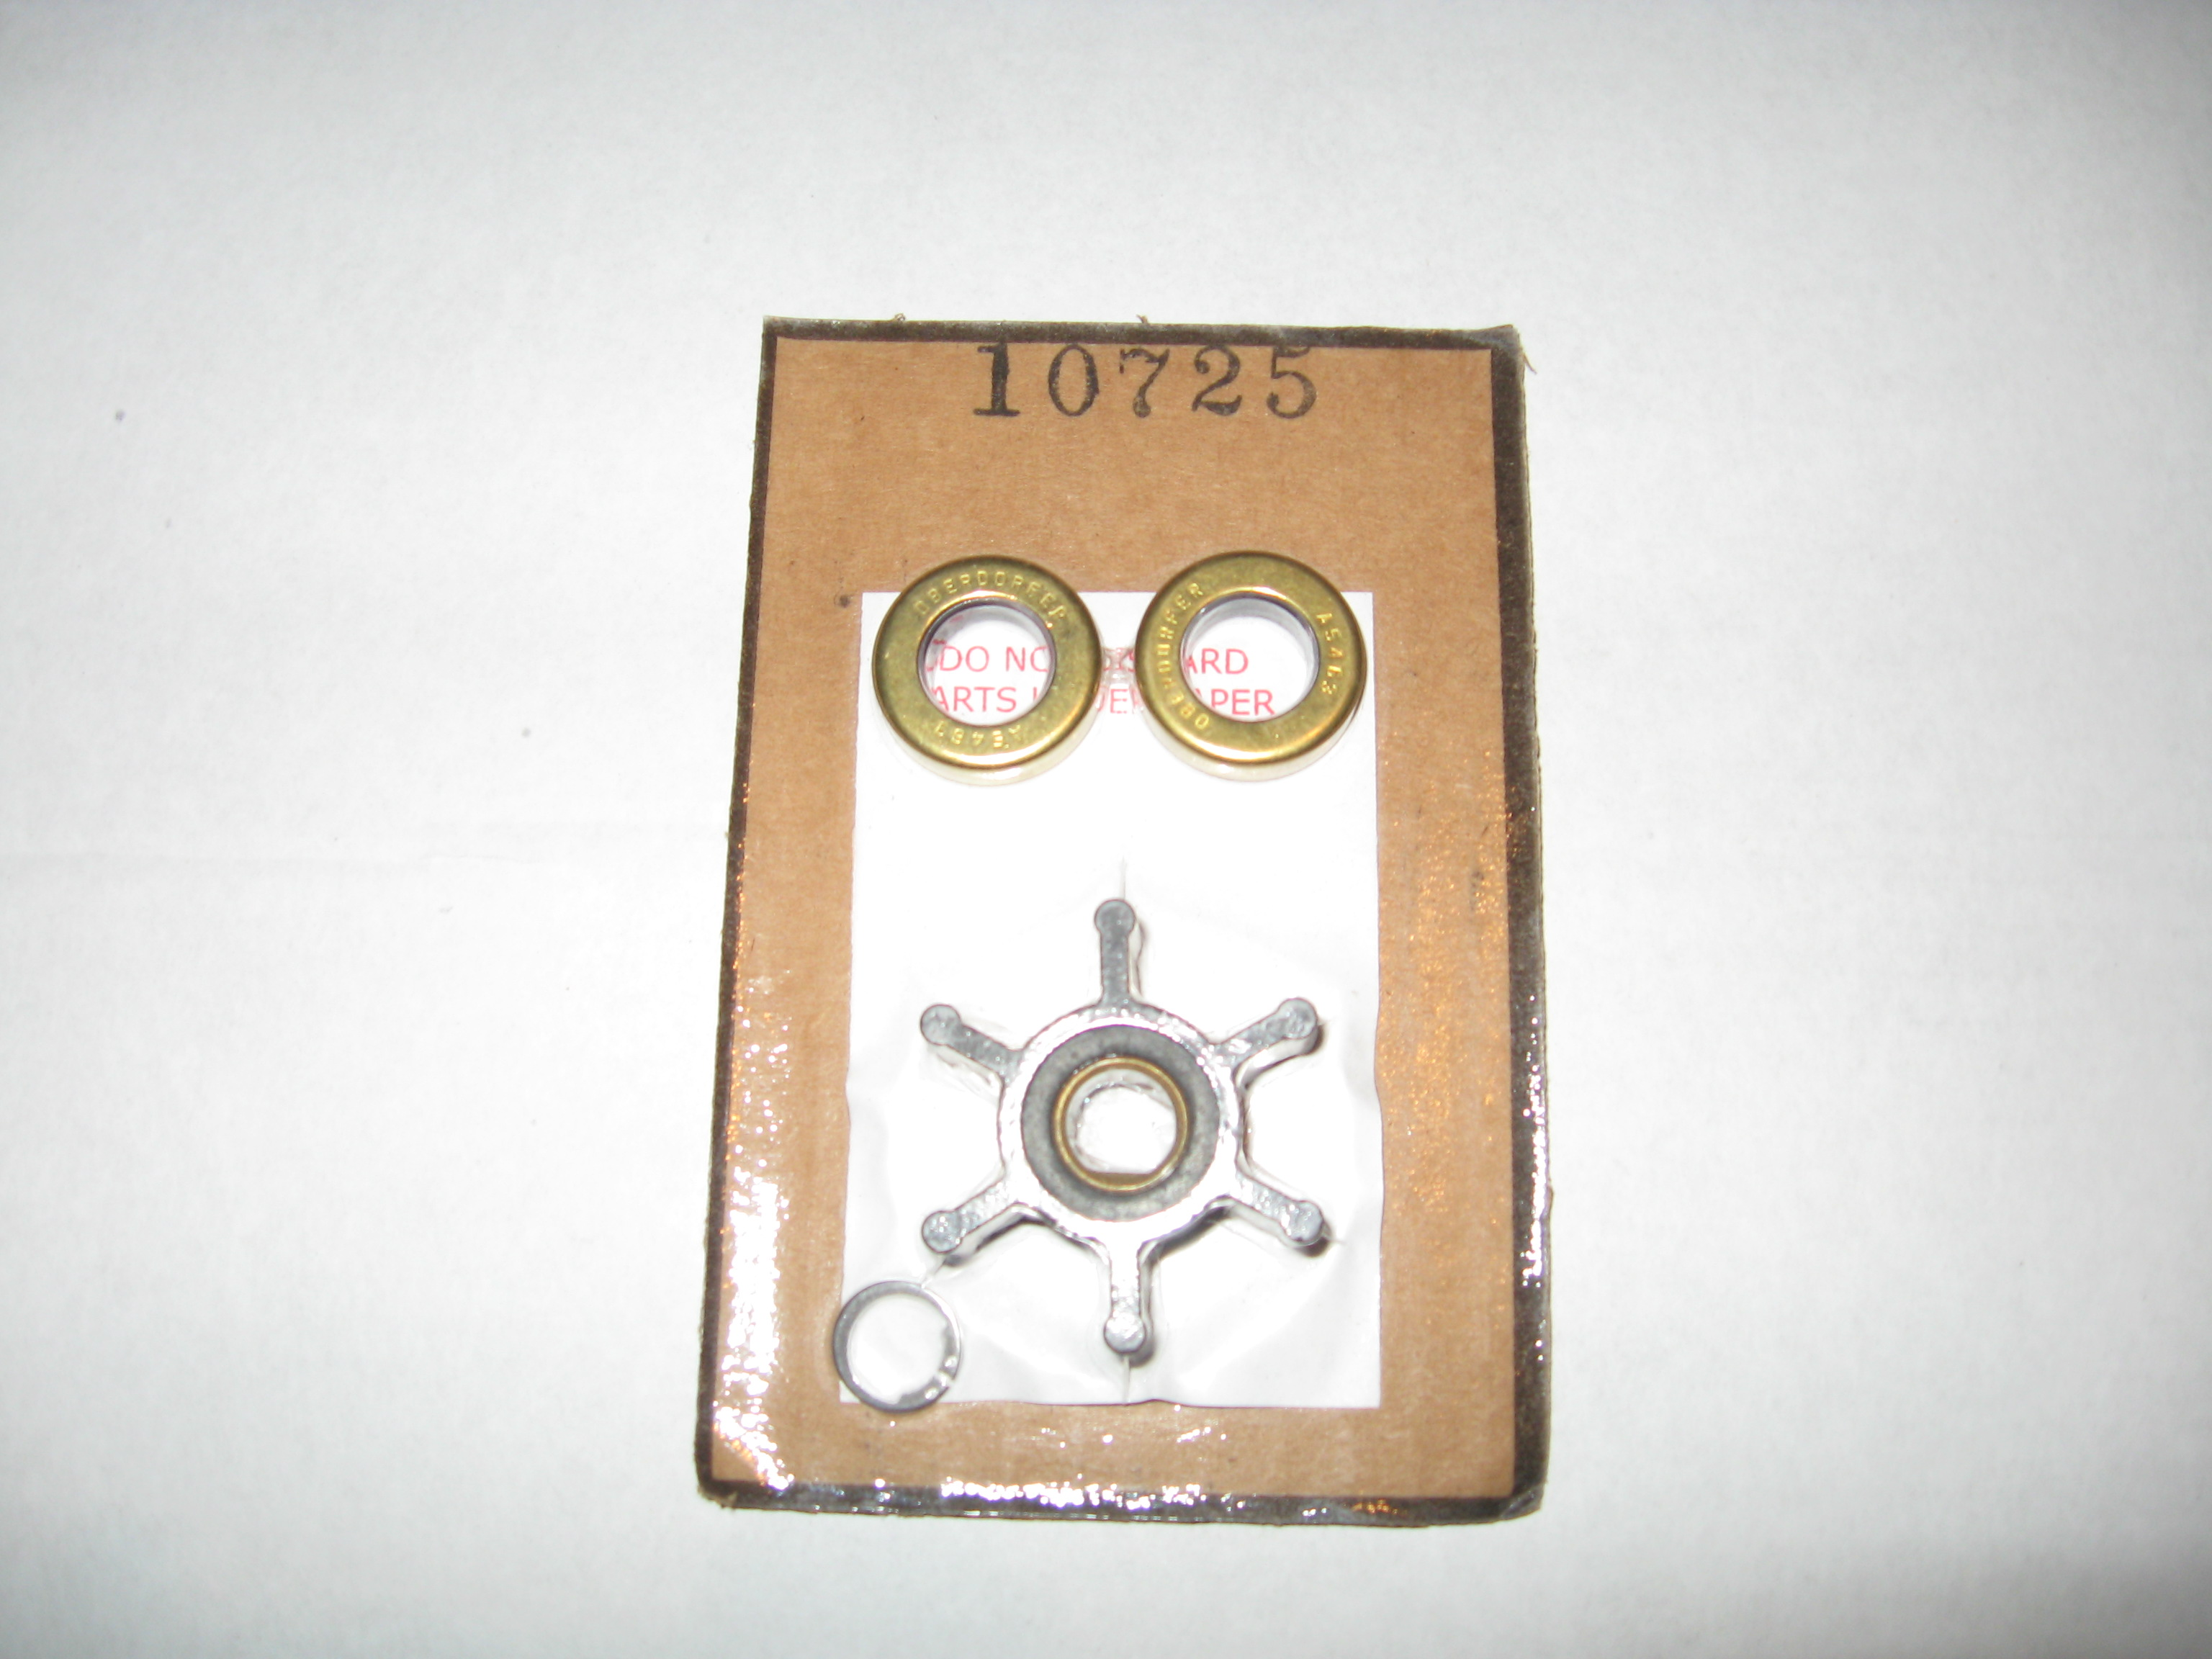 Oberdorfer 10725 Minor Repair Kit